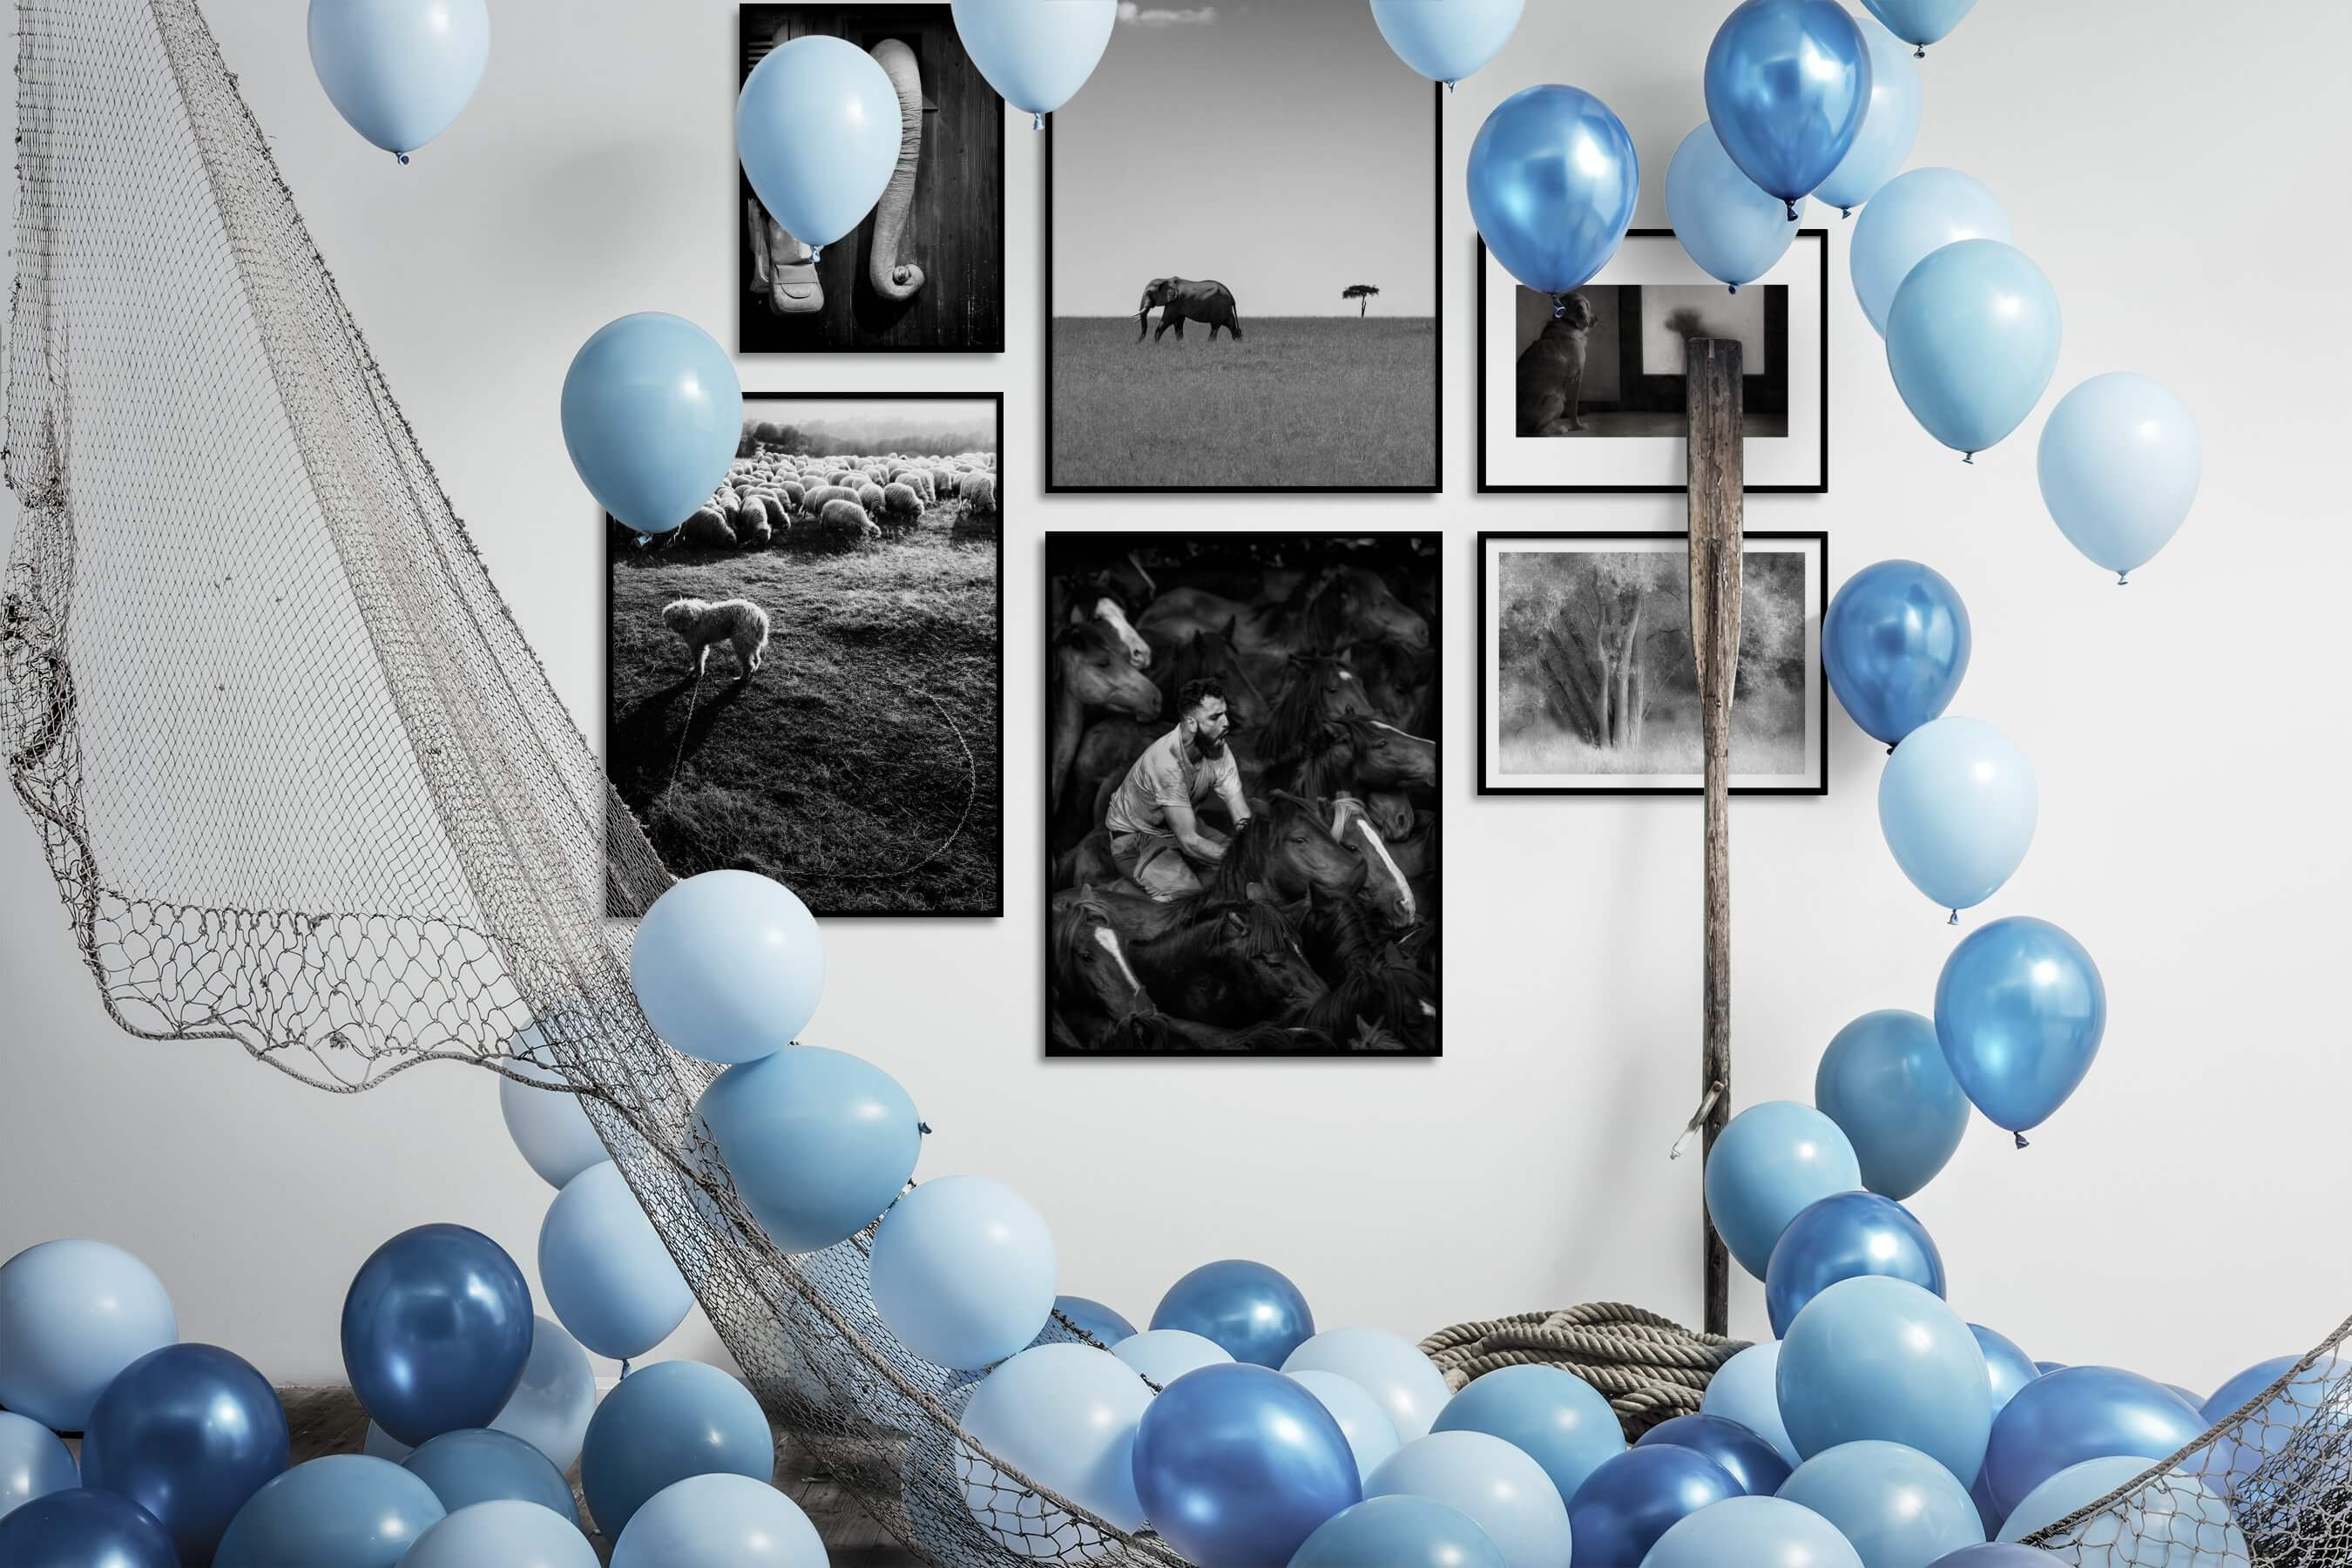 Gallery wall idea with six framed pictures arranged on a wall depicting Black & White, For the Moderate, Animals, Country Life, and Nature